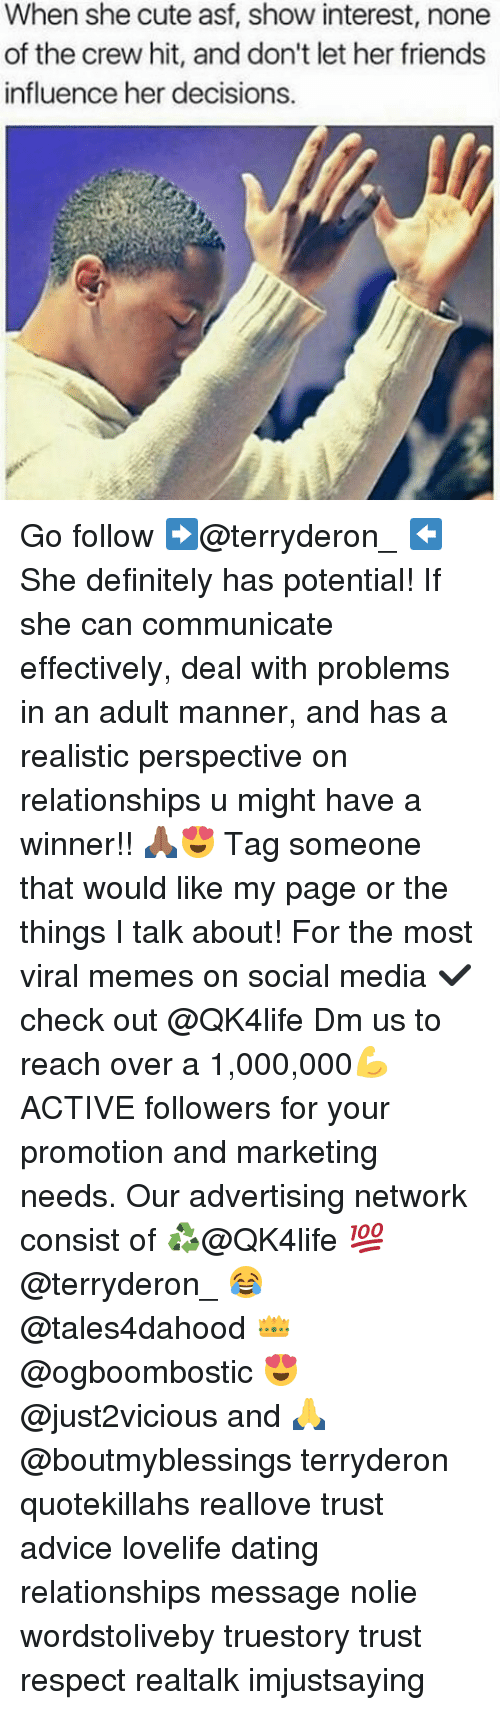 mannerism: When she cute asf, show interest, none  of the crew hit, and don't let her friends  influence her decisions. Go follow ➡@terryderon_ ⬅️ She definitely has potential! If she can communicate effectively, deal with problems in an adult manner, and has a realistic perspective on relationships u might have a winner!! 🙏🏾😍 Tag someone that would like my page or the things I talk about! For the most viral memes on social media ✔check out @QK4life Dm us to reach over a 1,000,000💪ACTIVE followers for your promotion and marketing needs. Our advertising network consist of ♻@QK4life 💯@terryderon_ 😂@tales4dahood 👑@ogboombostic 😍@just2vicious and 🙏@boutmyblessings terryderon quotekillahs reallove trust advice lovelife dating relationships message nolie wordstoliveby truestory trust respect realtalk imjustsaying